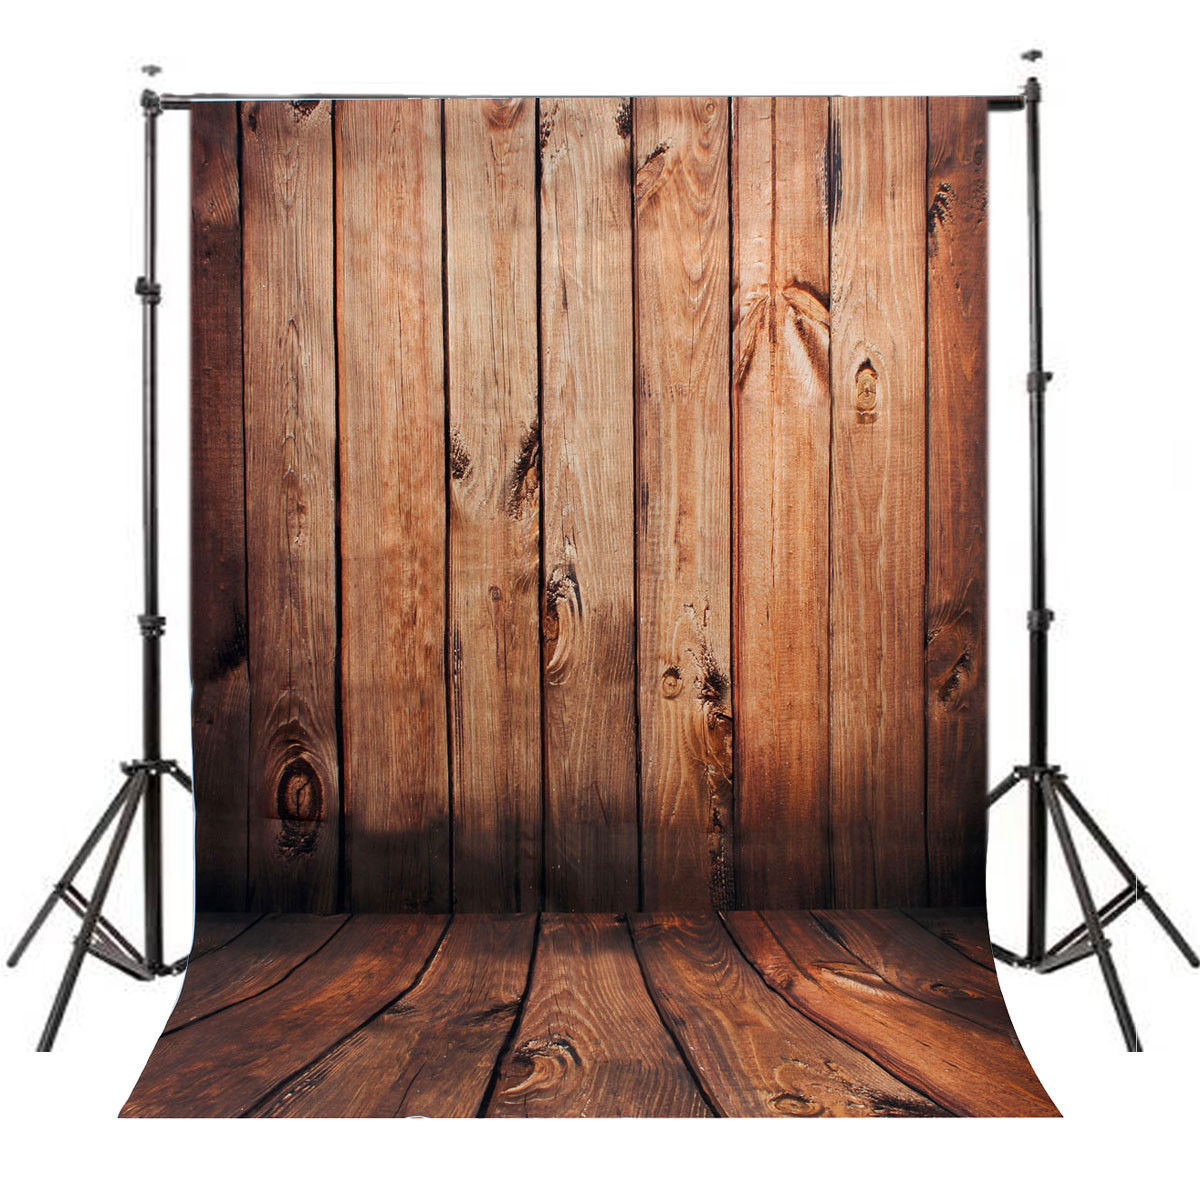 2.1*1.5m 5*7FT Wood Floor Ancient Subject Photography Backdrop Digital Screen For Studio Photograph 2017 New<br><br>Aliexpress